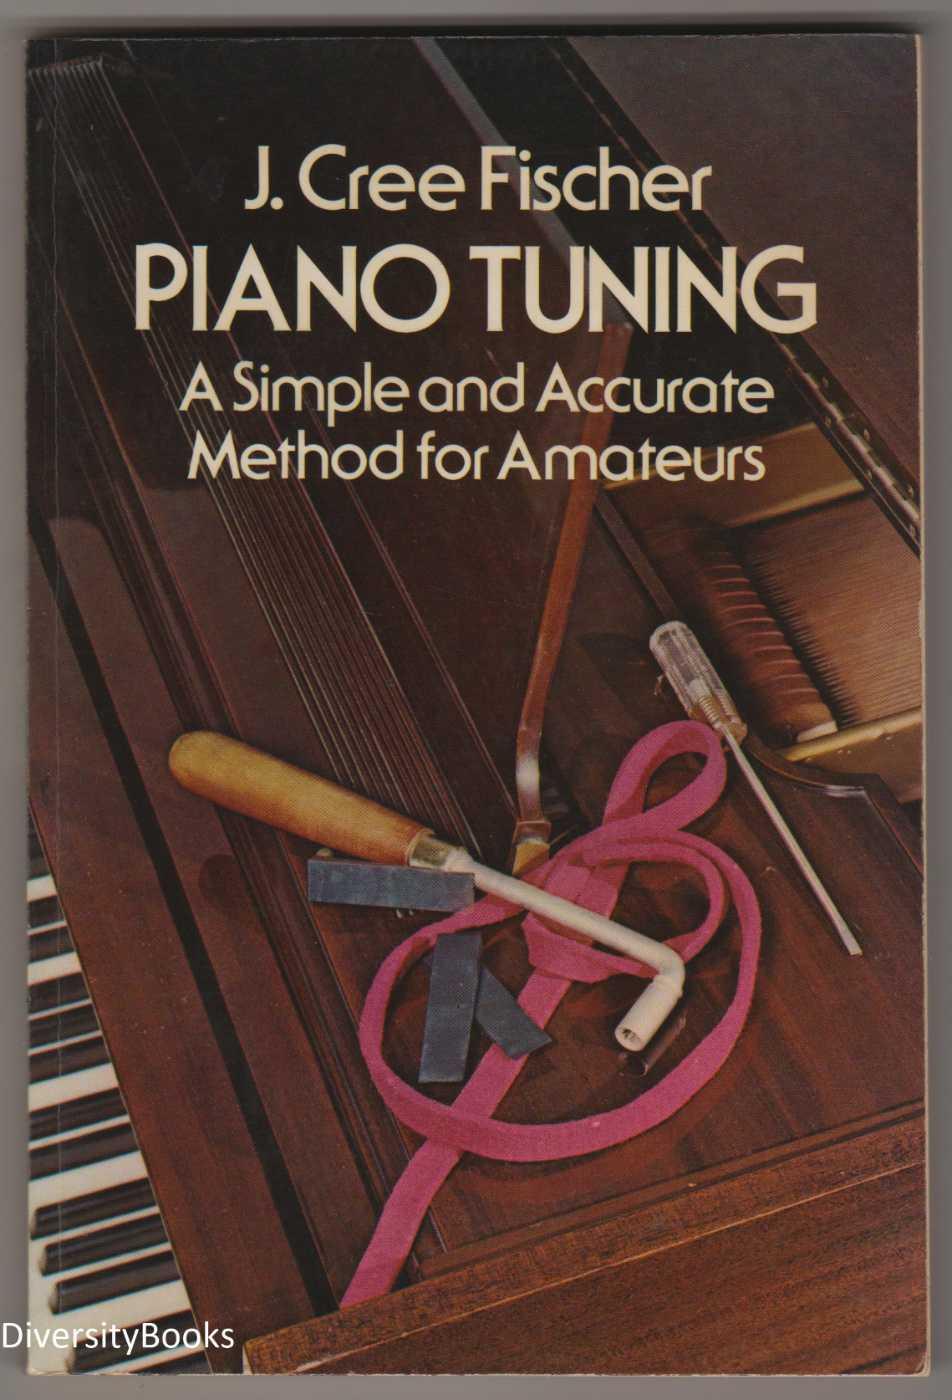 Image for PIANO TUNING: A Simple and Accurate Method for Amateurs